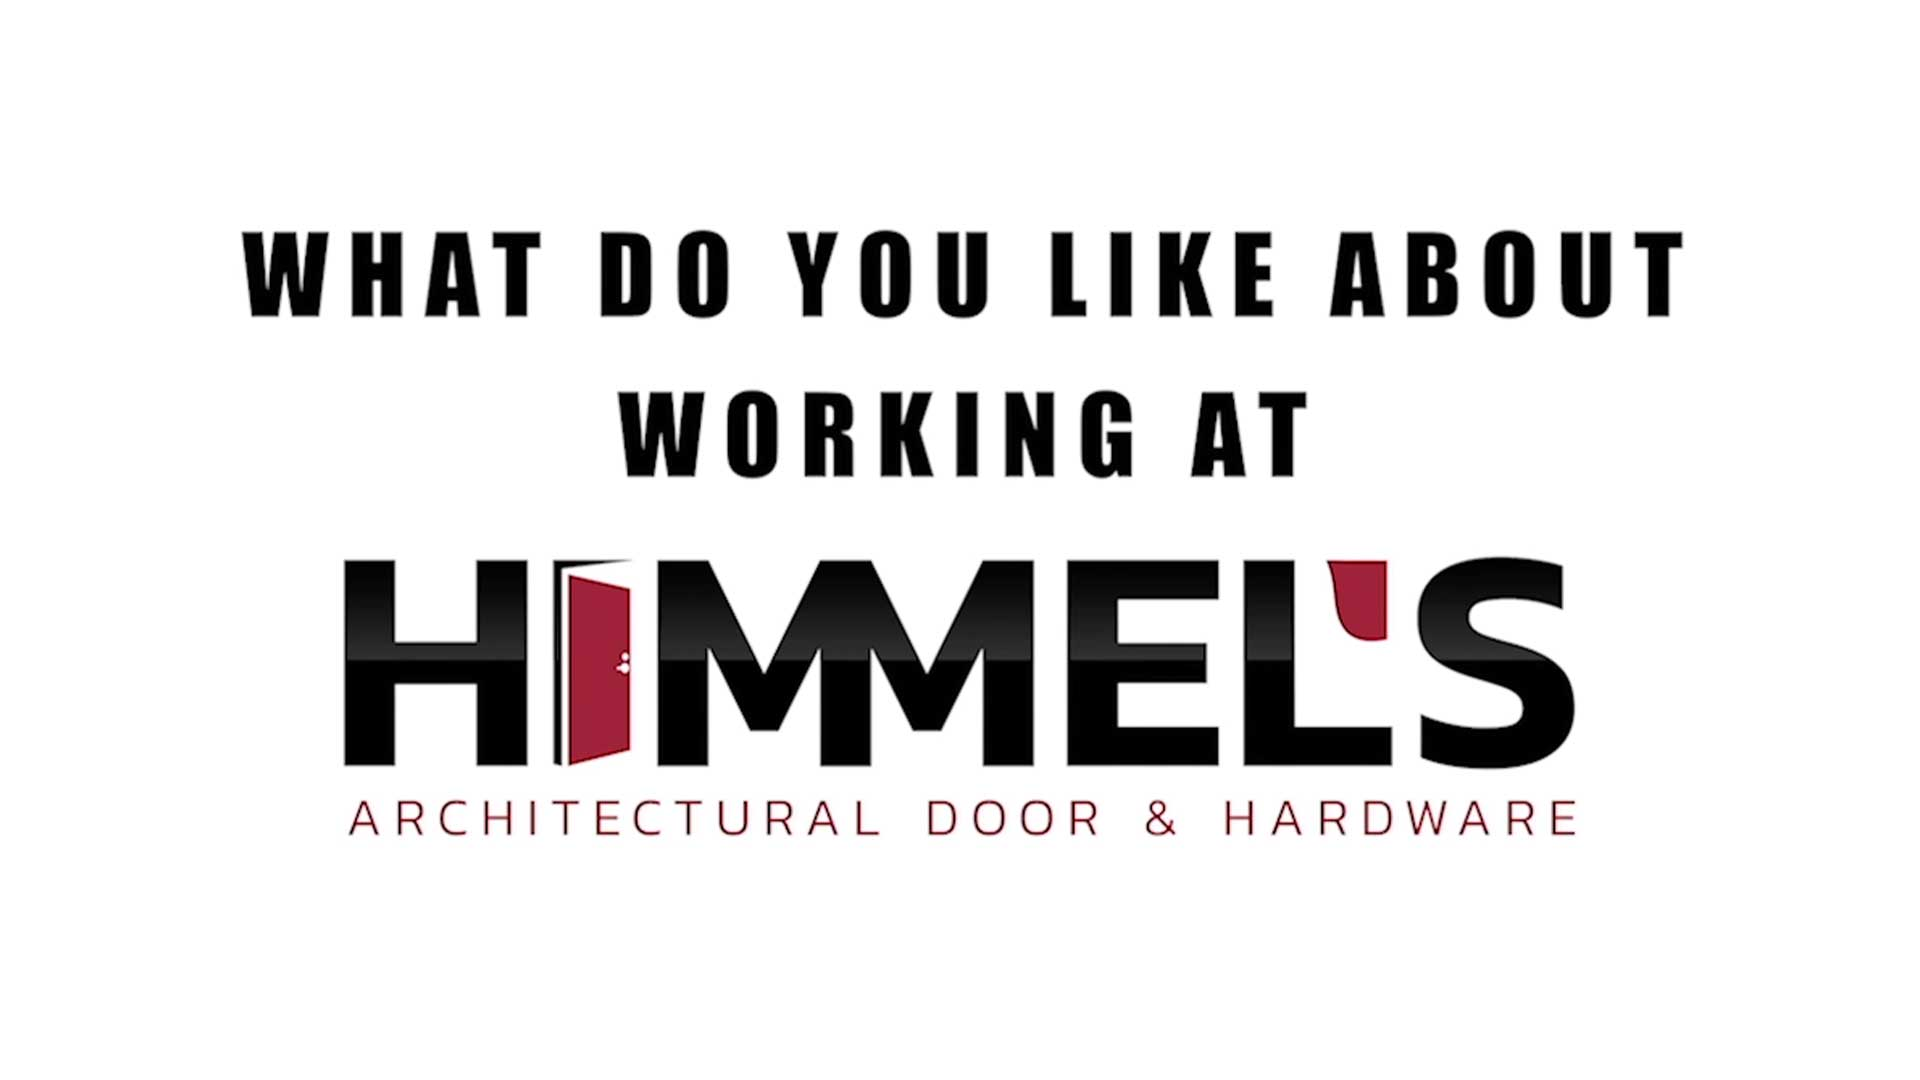 What do you like about working at Himmel's